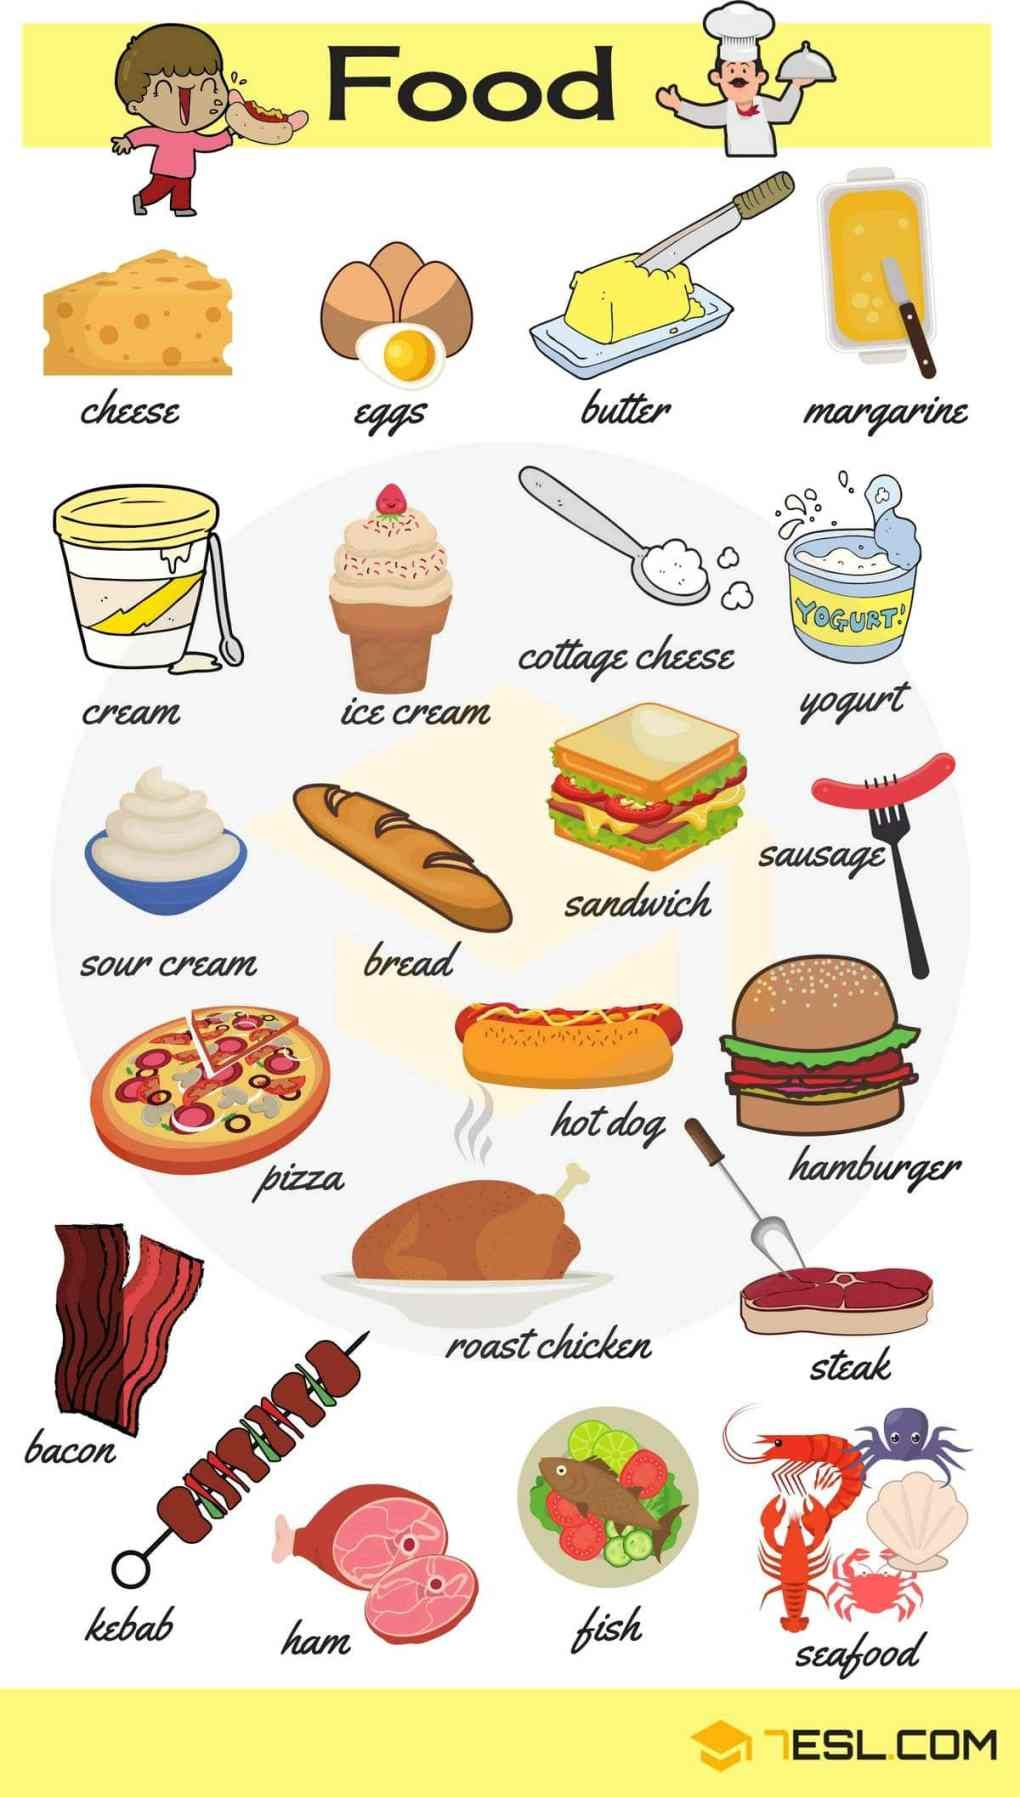 18+ Foods from animal sources usually contain which type of protein images